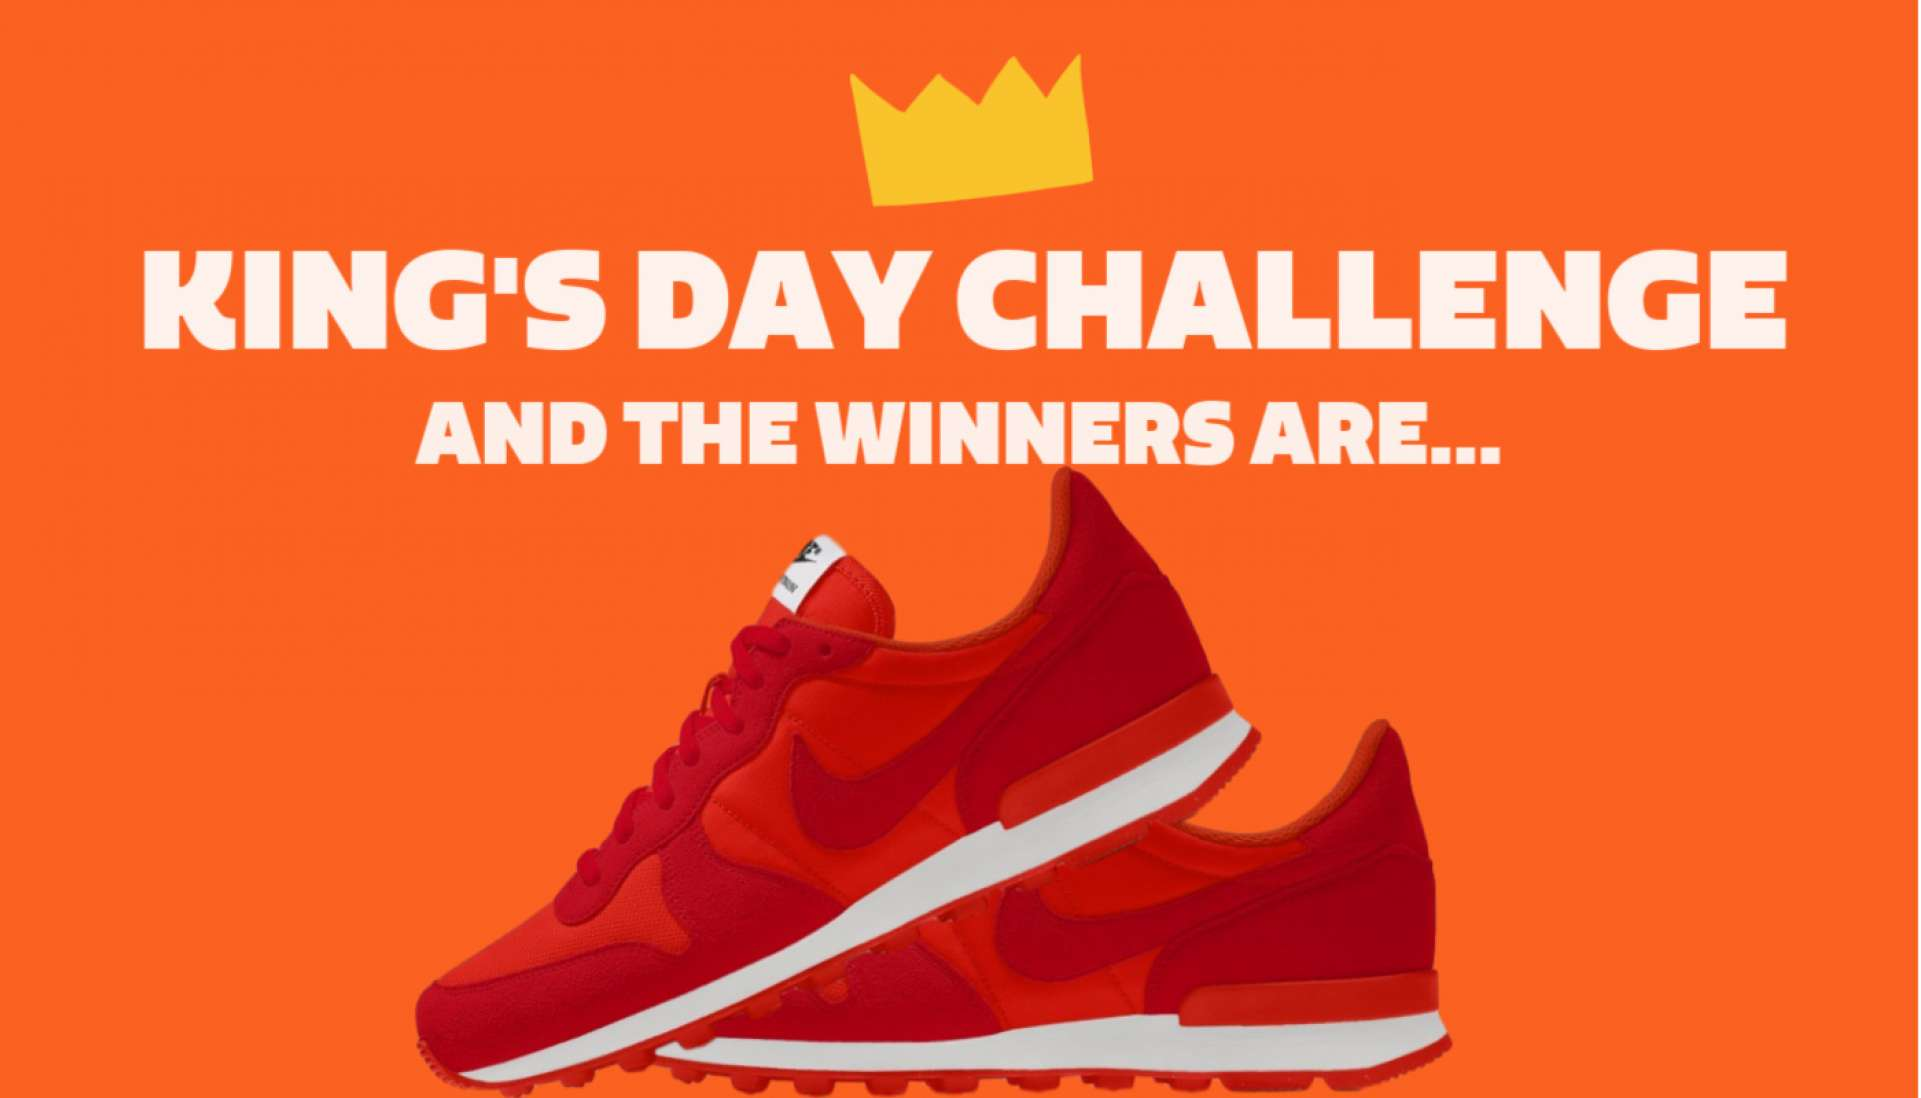 CTOUCH Kings day challenge web tegel 2